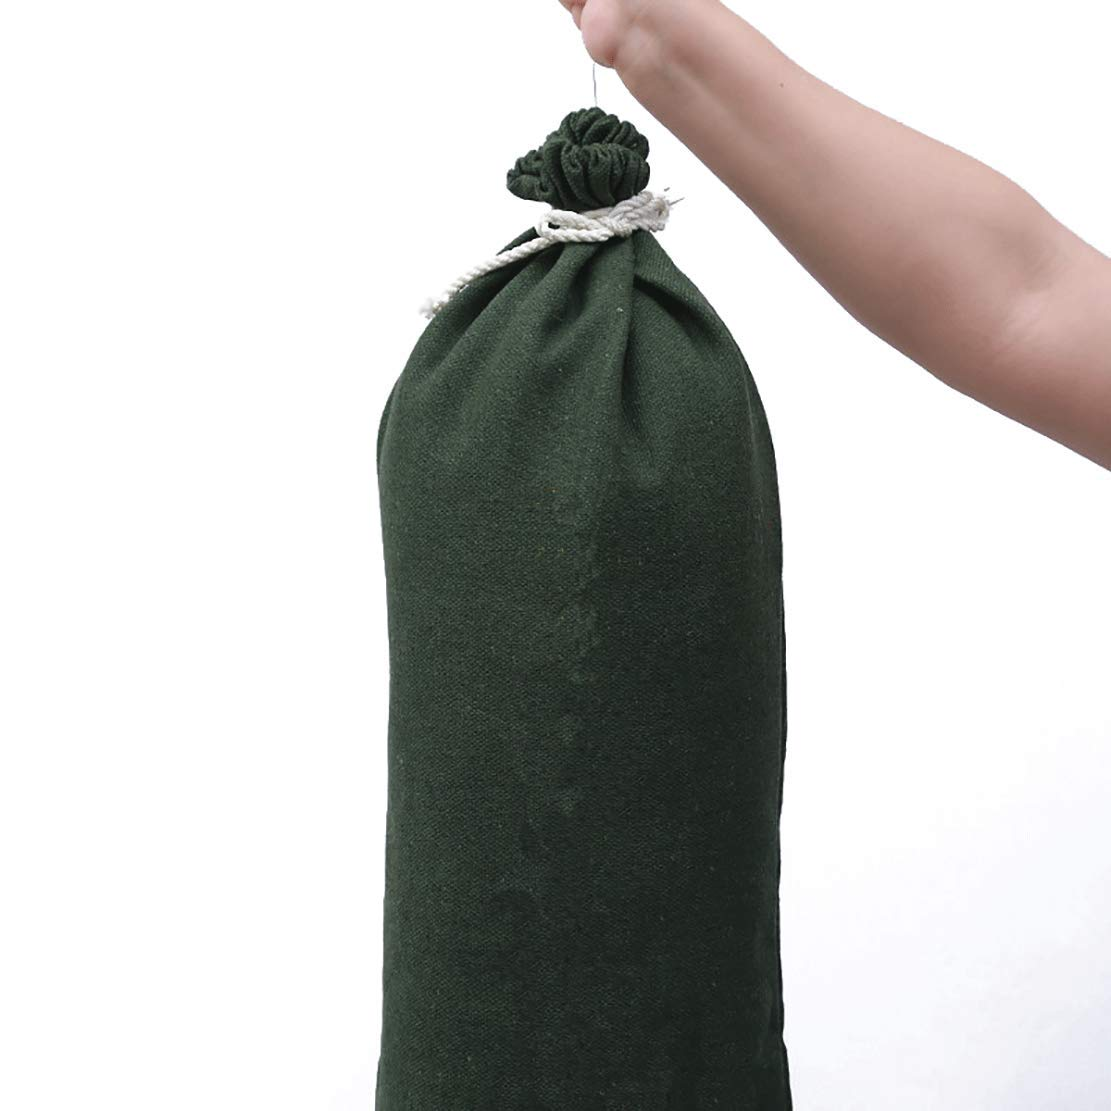 OriginA Empty Sandbag Flood Barrier Sand Bags for Flood Control, Eco-Friendly, 10x16in, 50 Pack, Green by OriginA (Image #2)